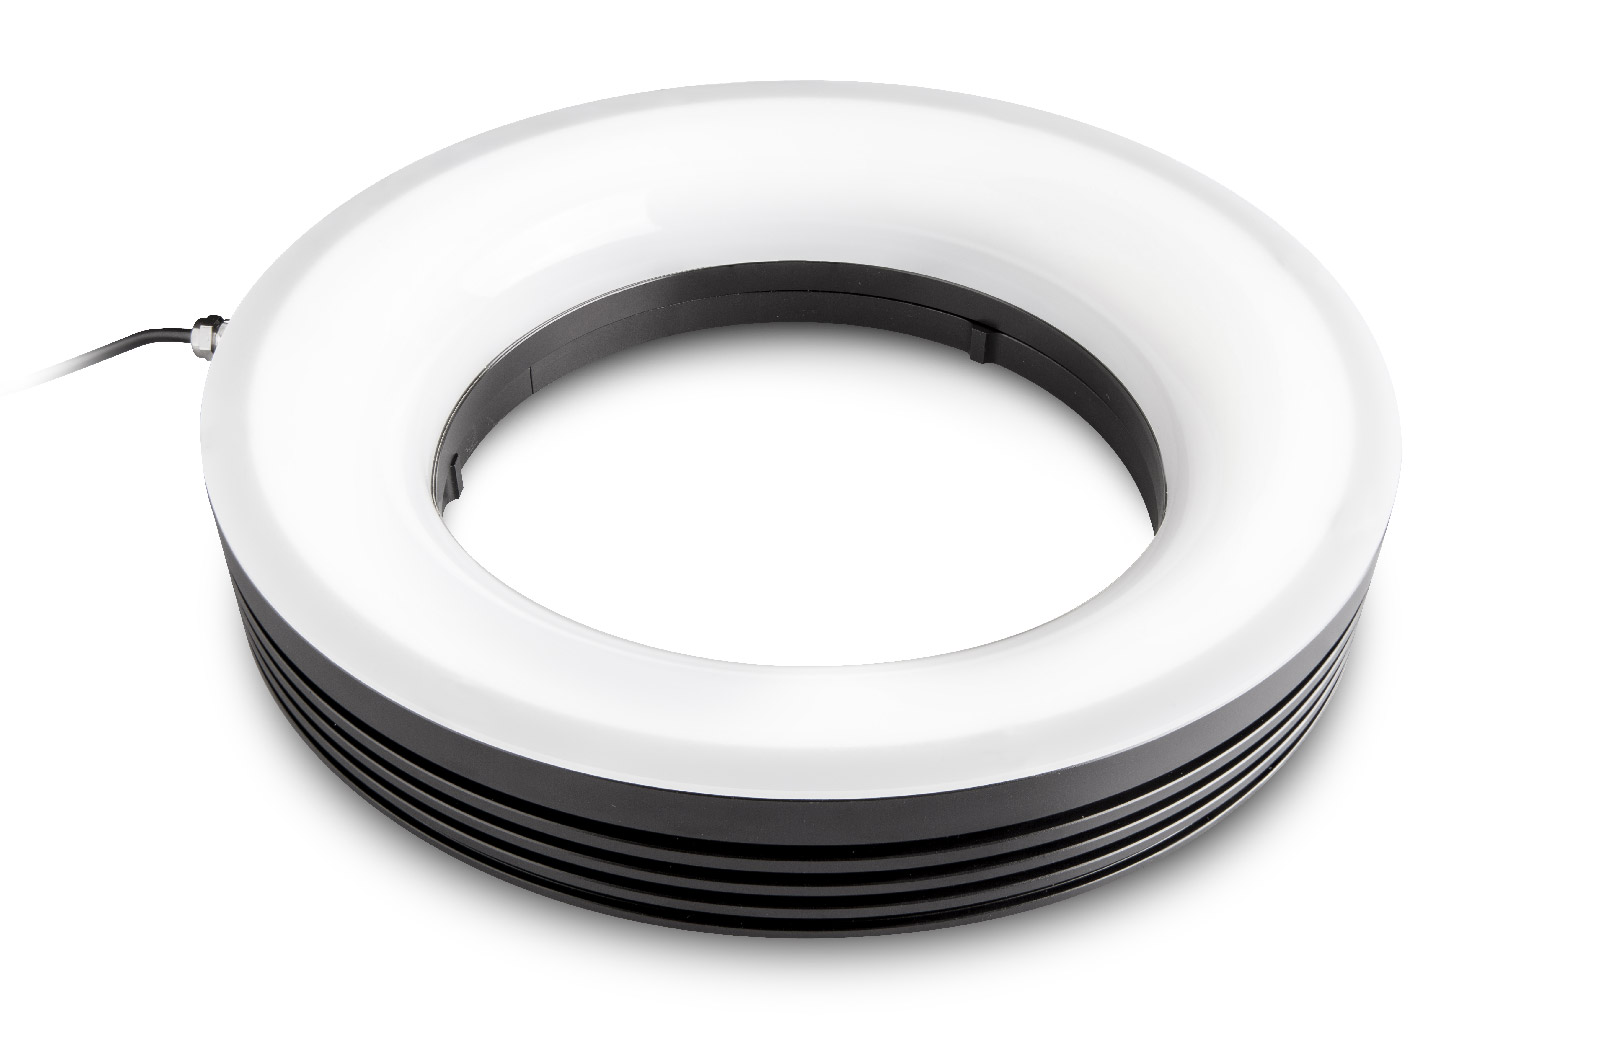 LTRN245W25 Ring LED illuminator, white oblique light